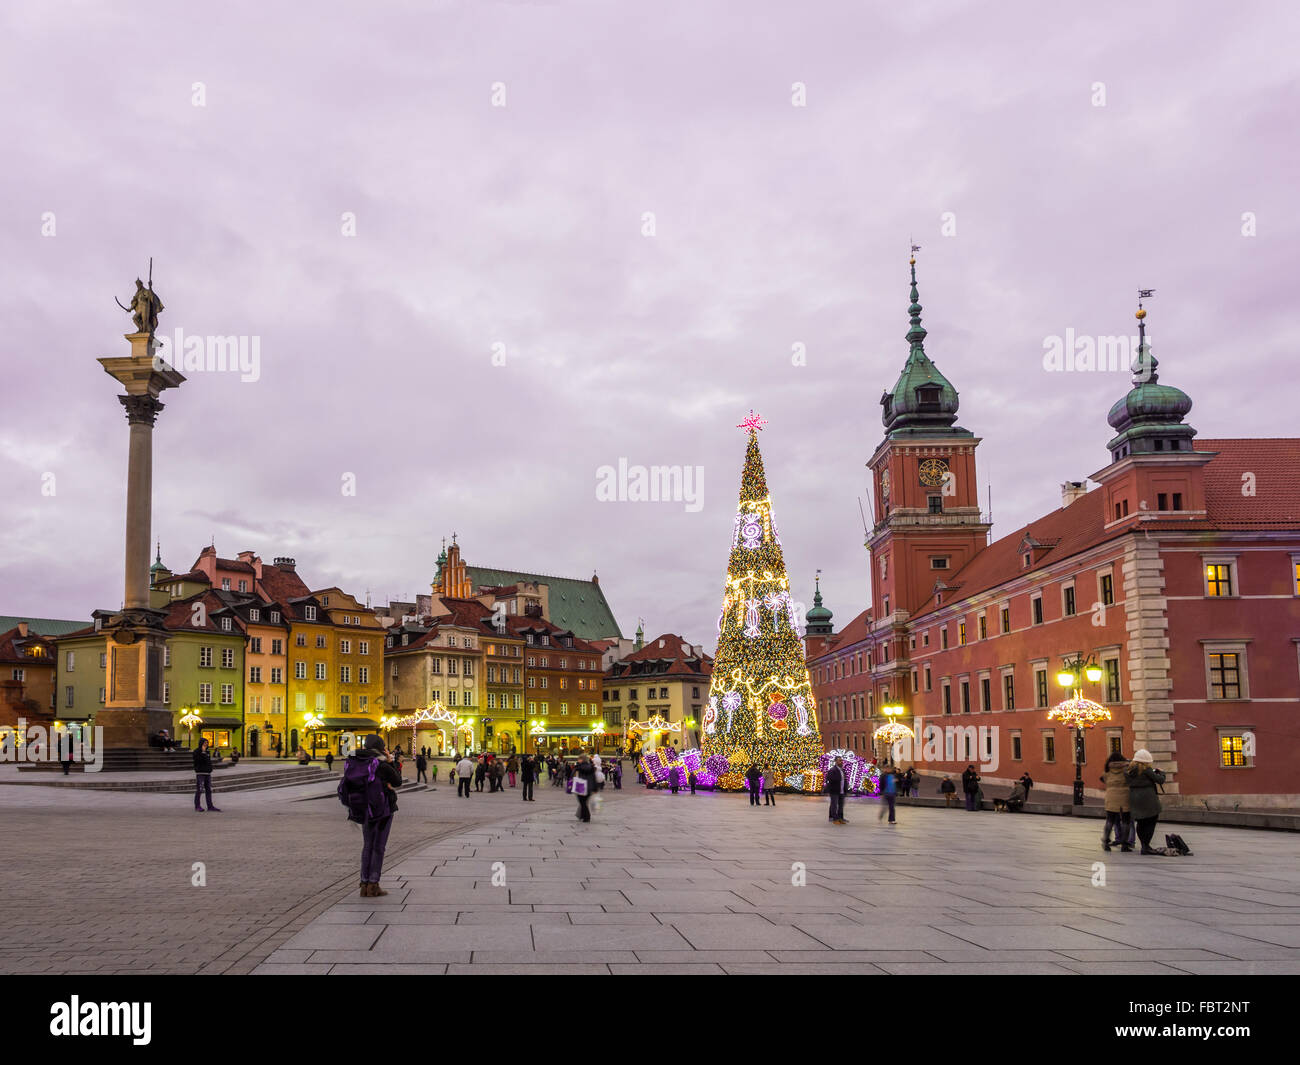 Castle Square in the Old Town of Warsaw, Poland in the early evening at Christmas time. - Stock Image